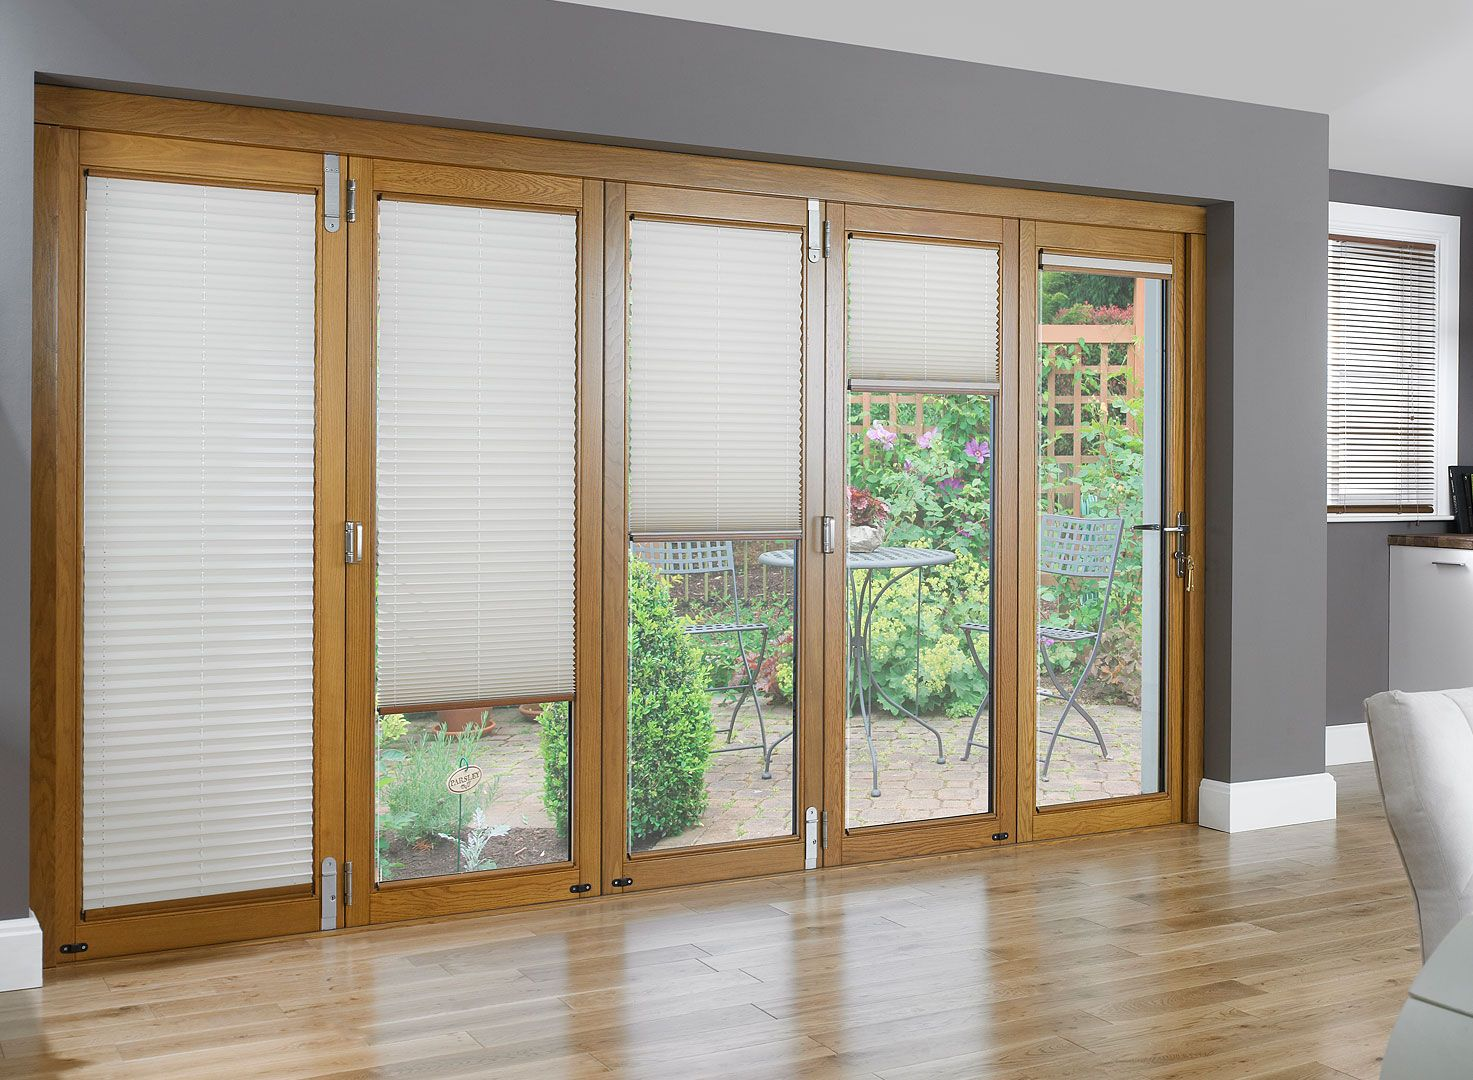 Blinds for sliding doors can give your room a different impact blinds for sliding doors can give your room a different impact description from uk planetlyrics Gallery